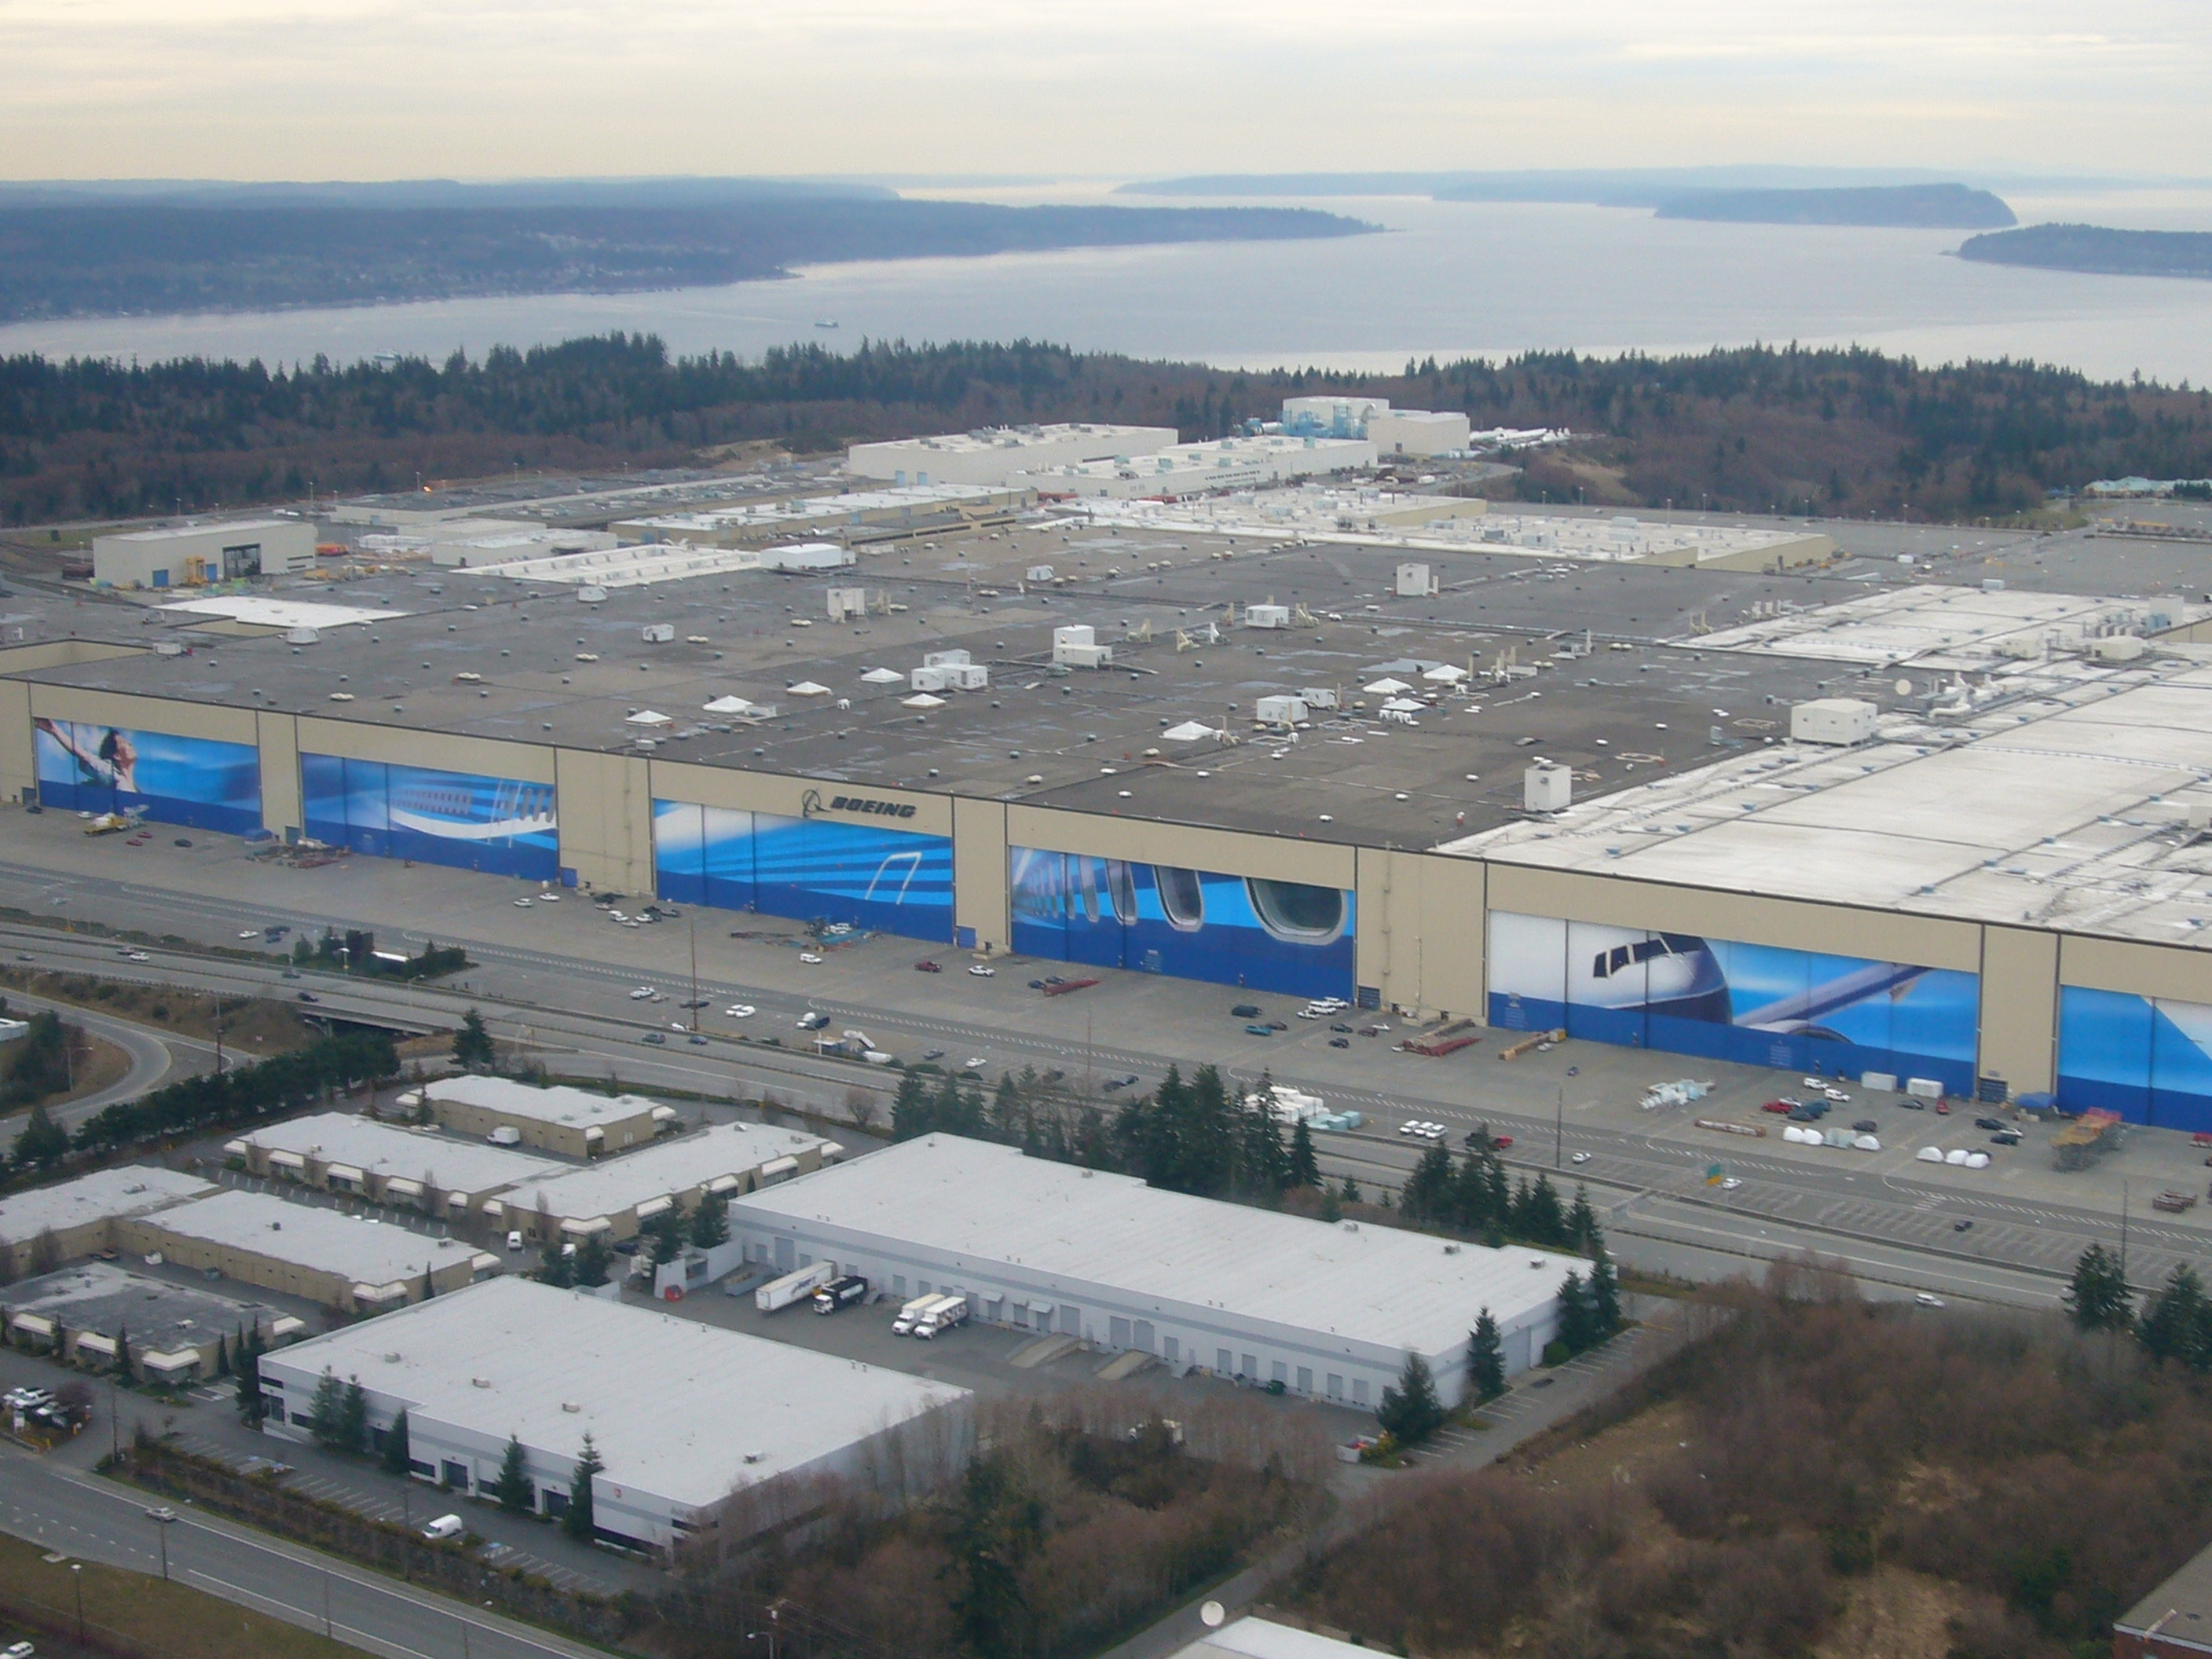 Boeing Everett Factory - Wikipedia intended for Boeing Everett Factory Map